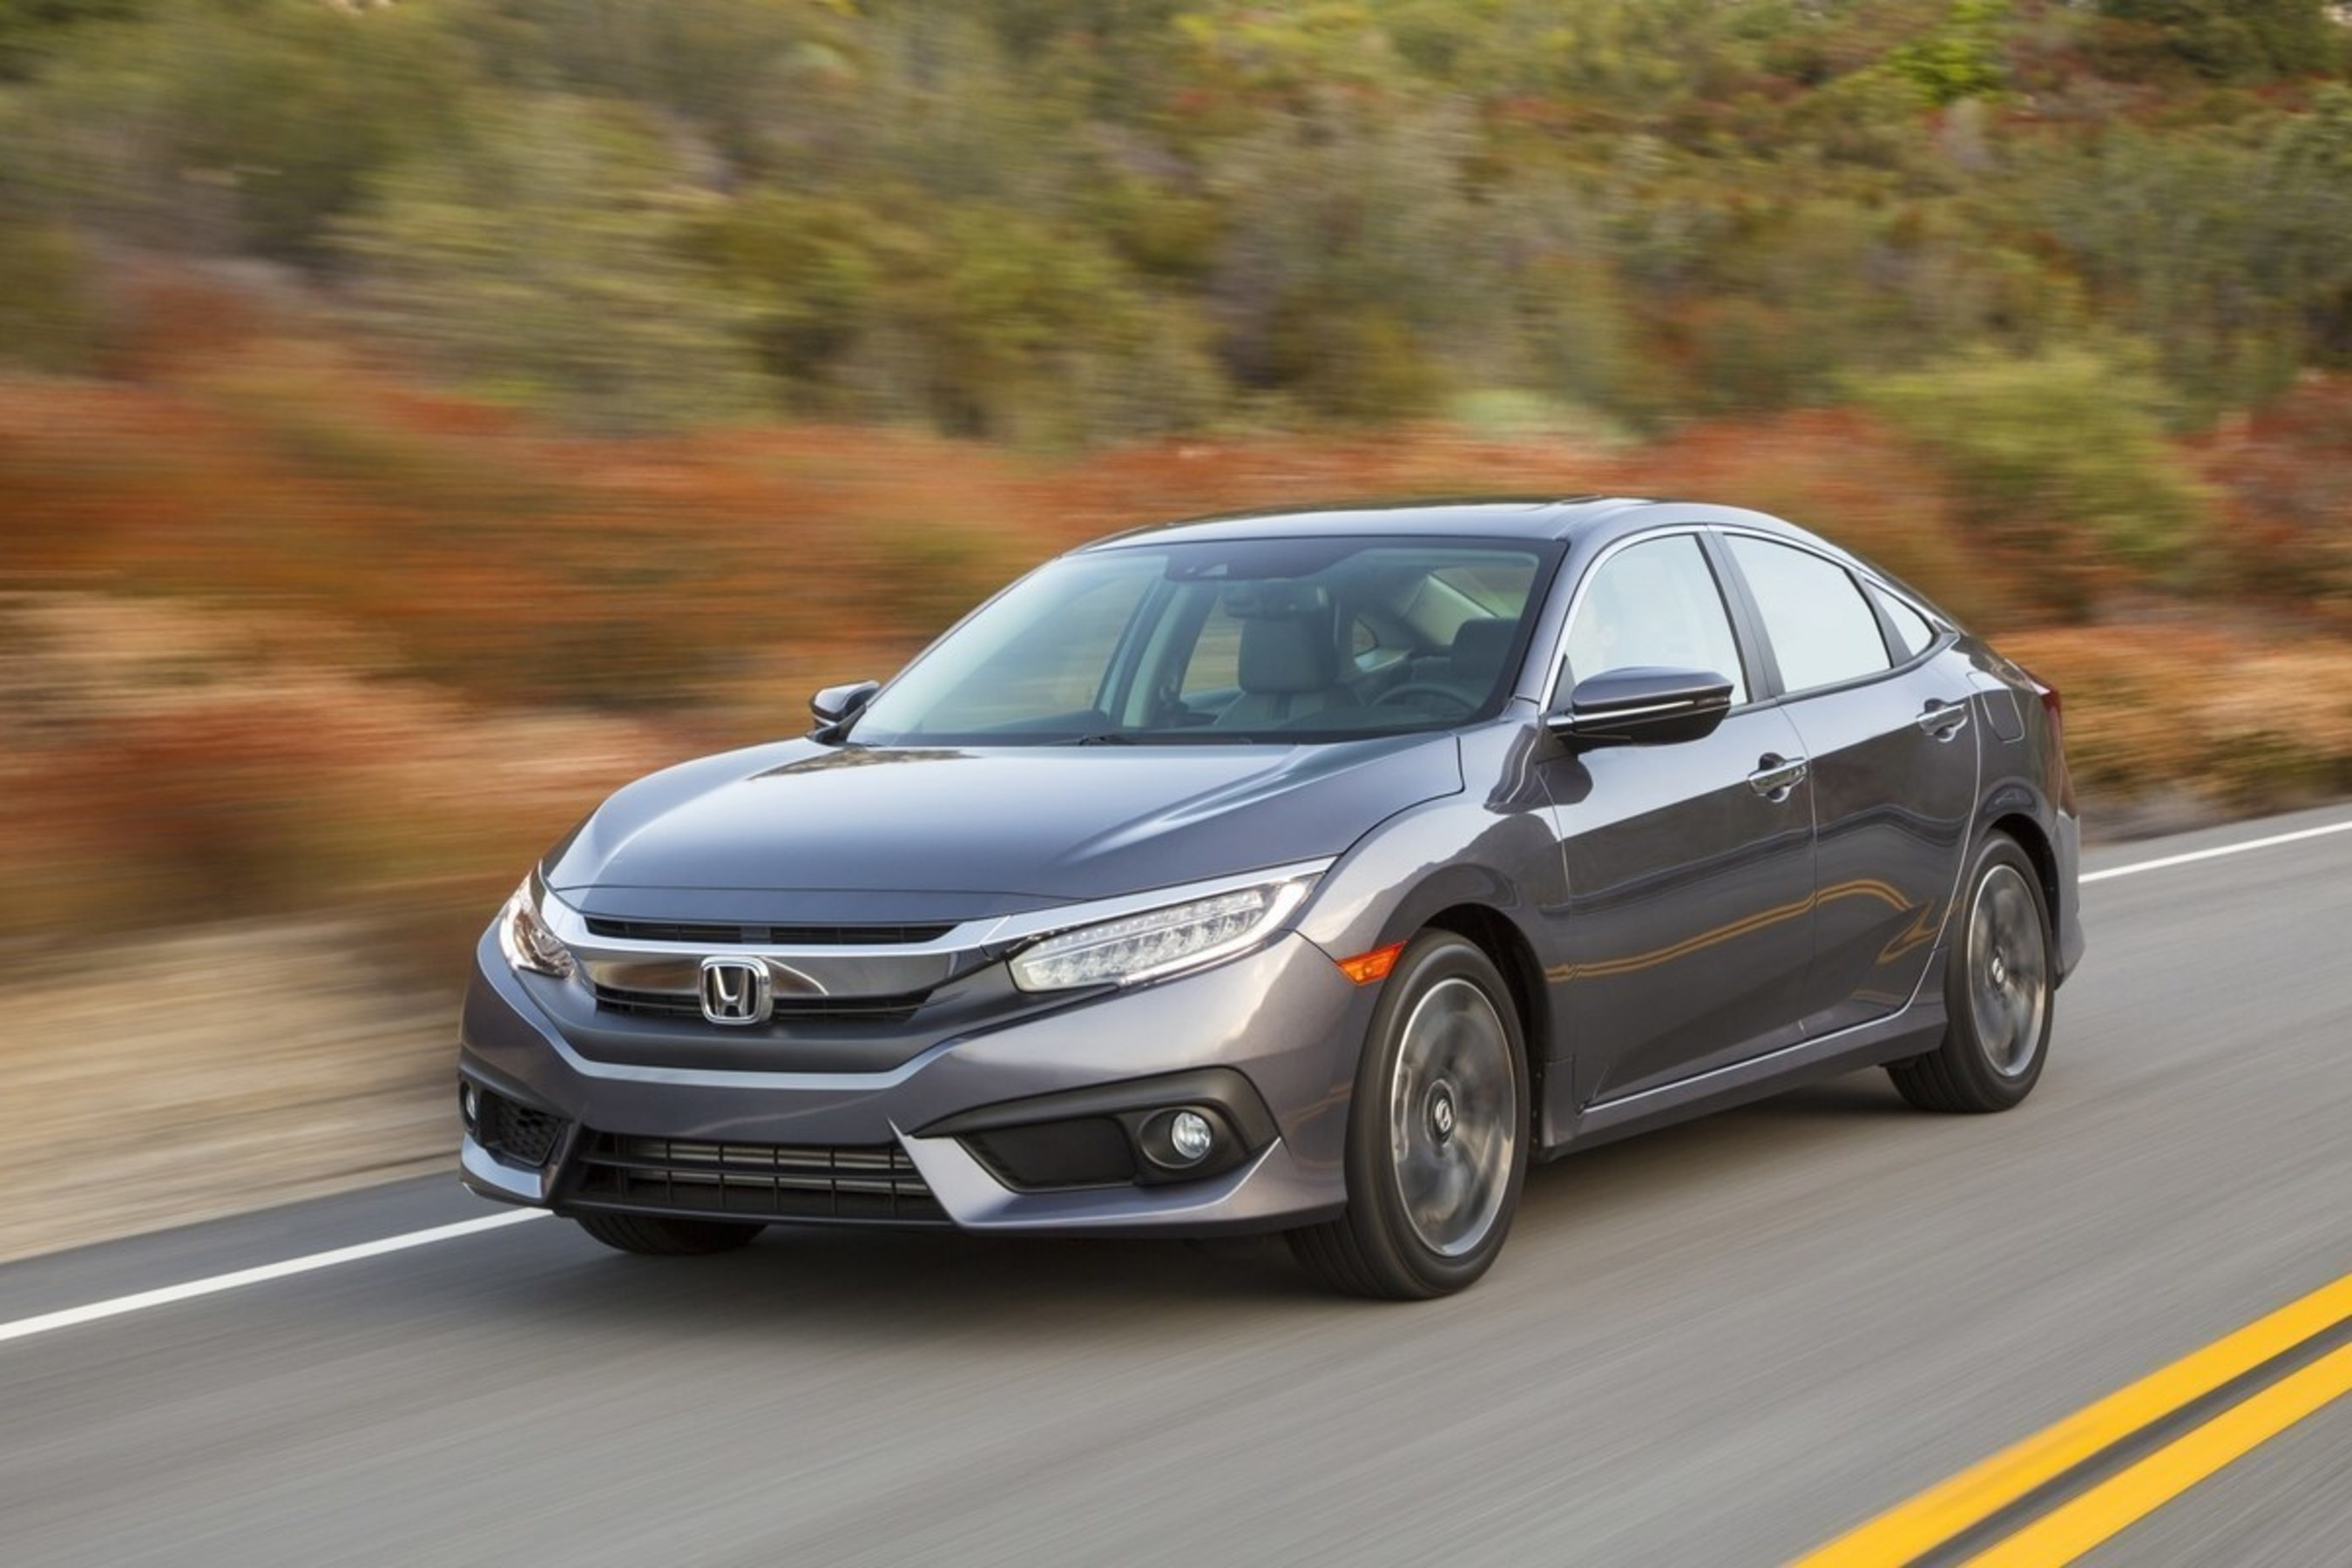 Hispanic Motor Press Names Honda Civic Best Compact Sedan And Pilot SUV Of 2016